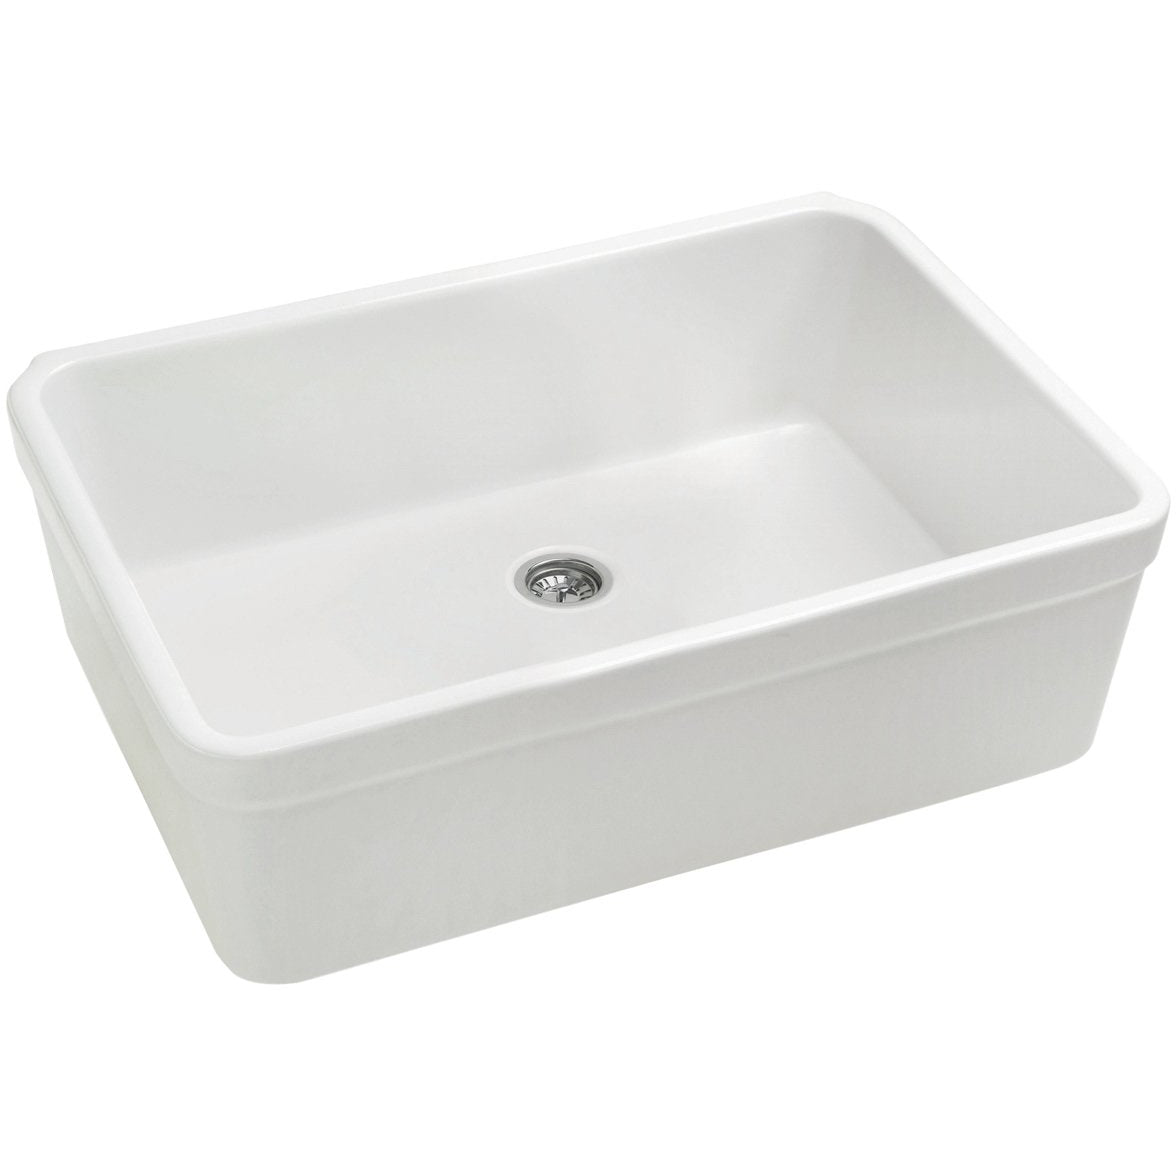 Whitehaus Basichaus Single Bowl Fireclay Sink with a Smooth Front Apron and a decorative 2